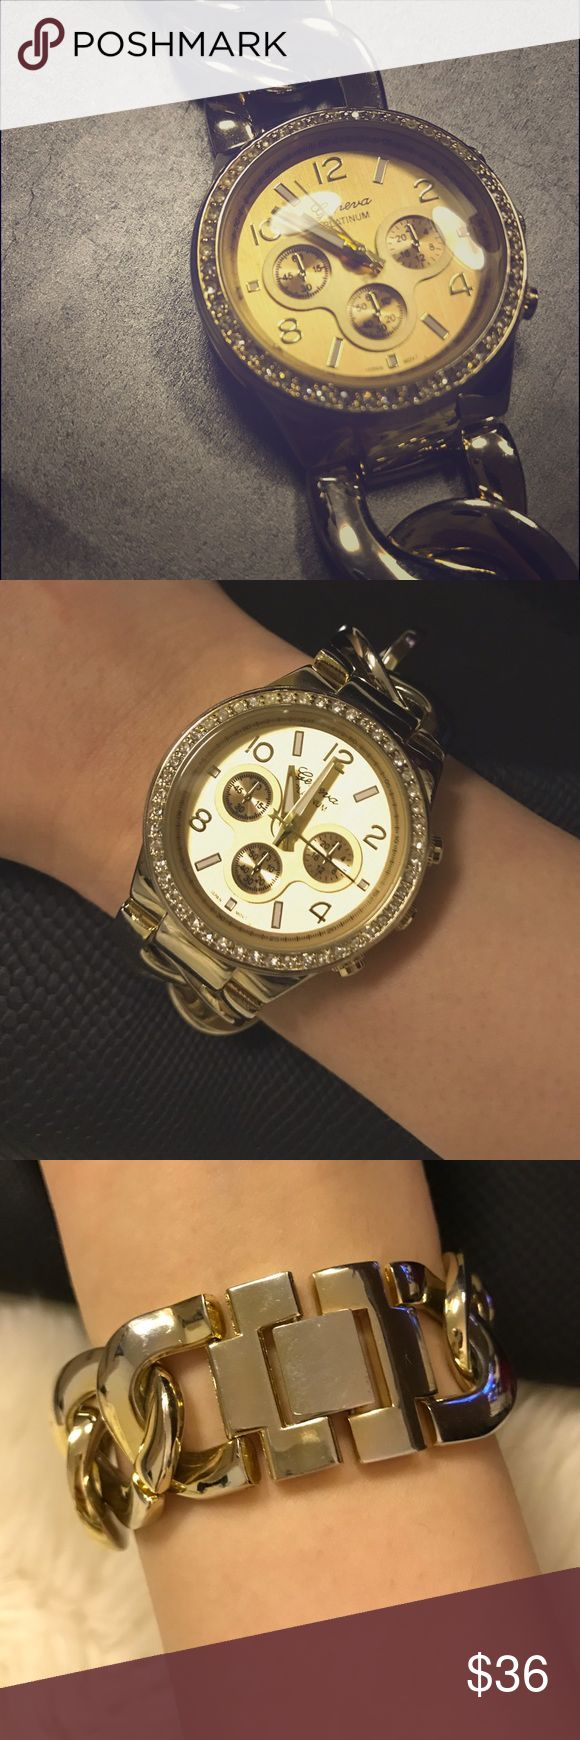 ✨Gold Chain Watch✨ Gold Bulky Chain Watch. Very similar to MK Gold Watch. ( Picture 4 ) No real gold but looks very gorgeous and trendy✨✨ Still works!!! Francesca's Collections Accessories Watches